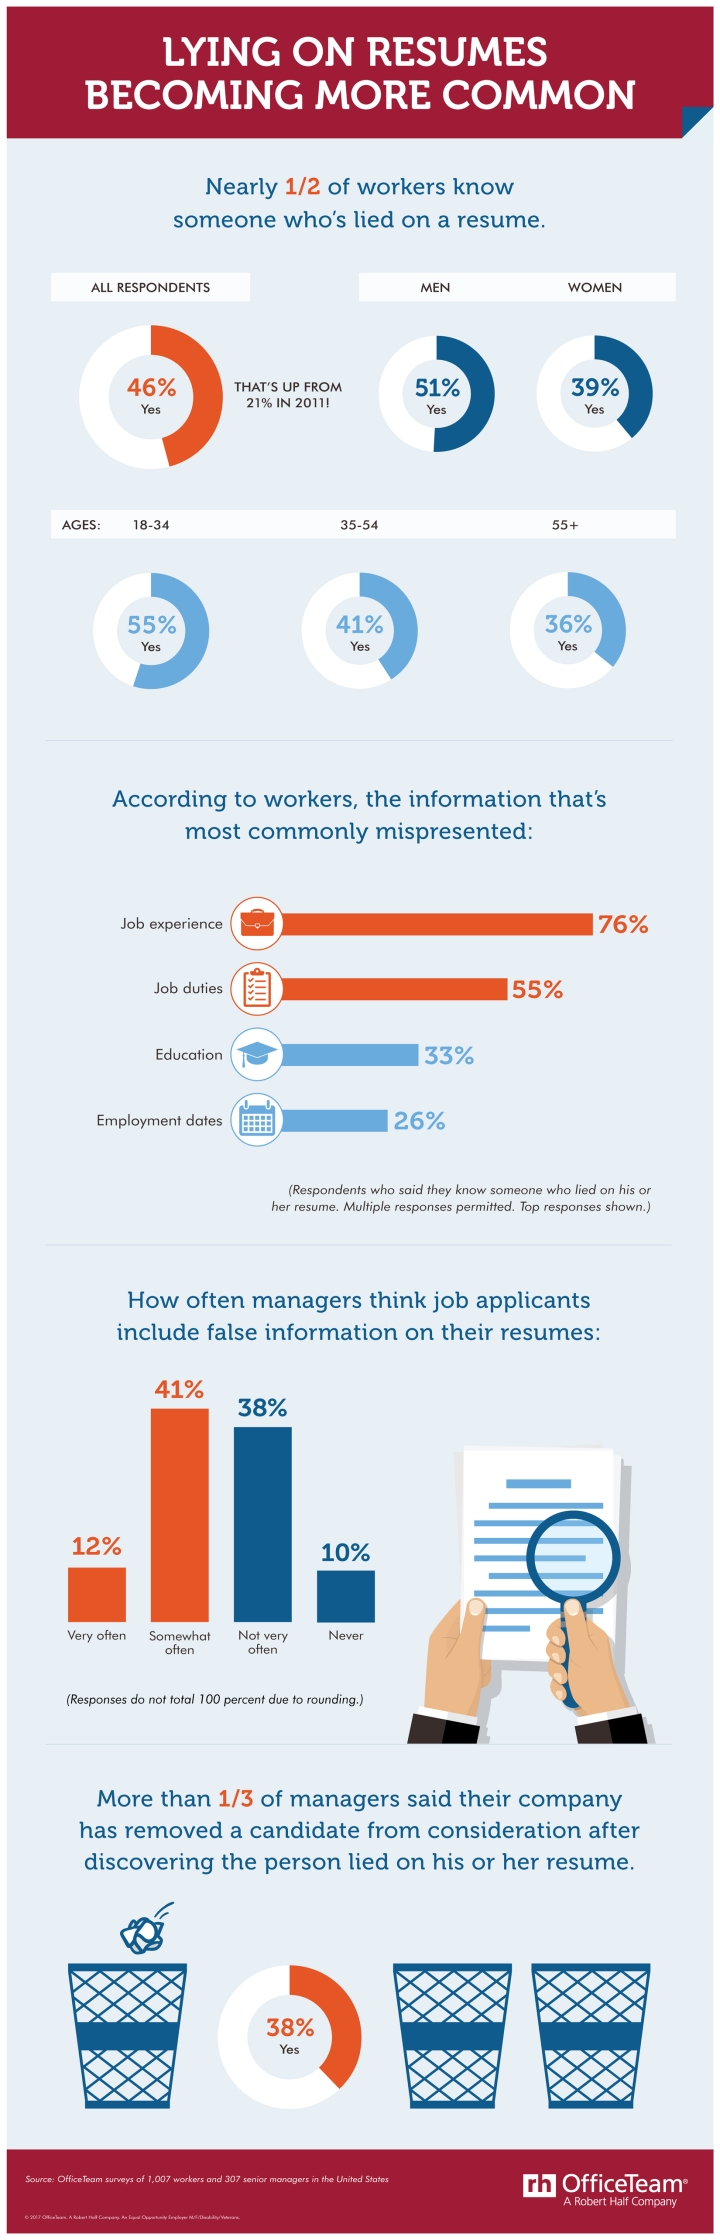 OfficeTeam+Lying+on+Resume+Infographic